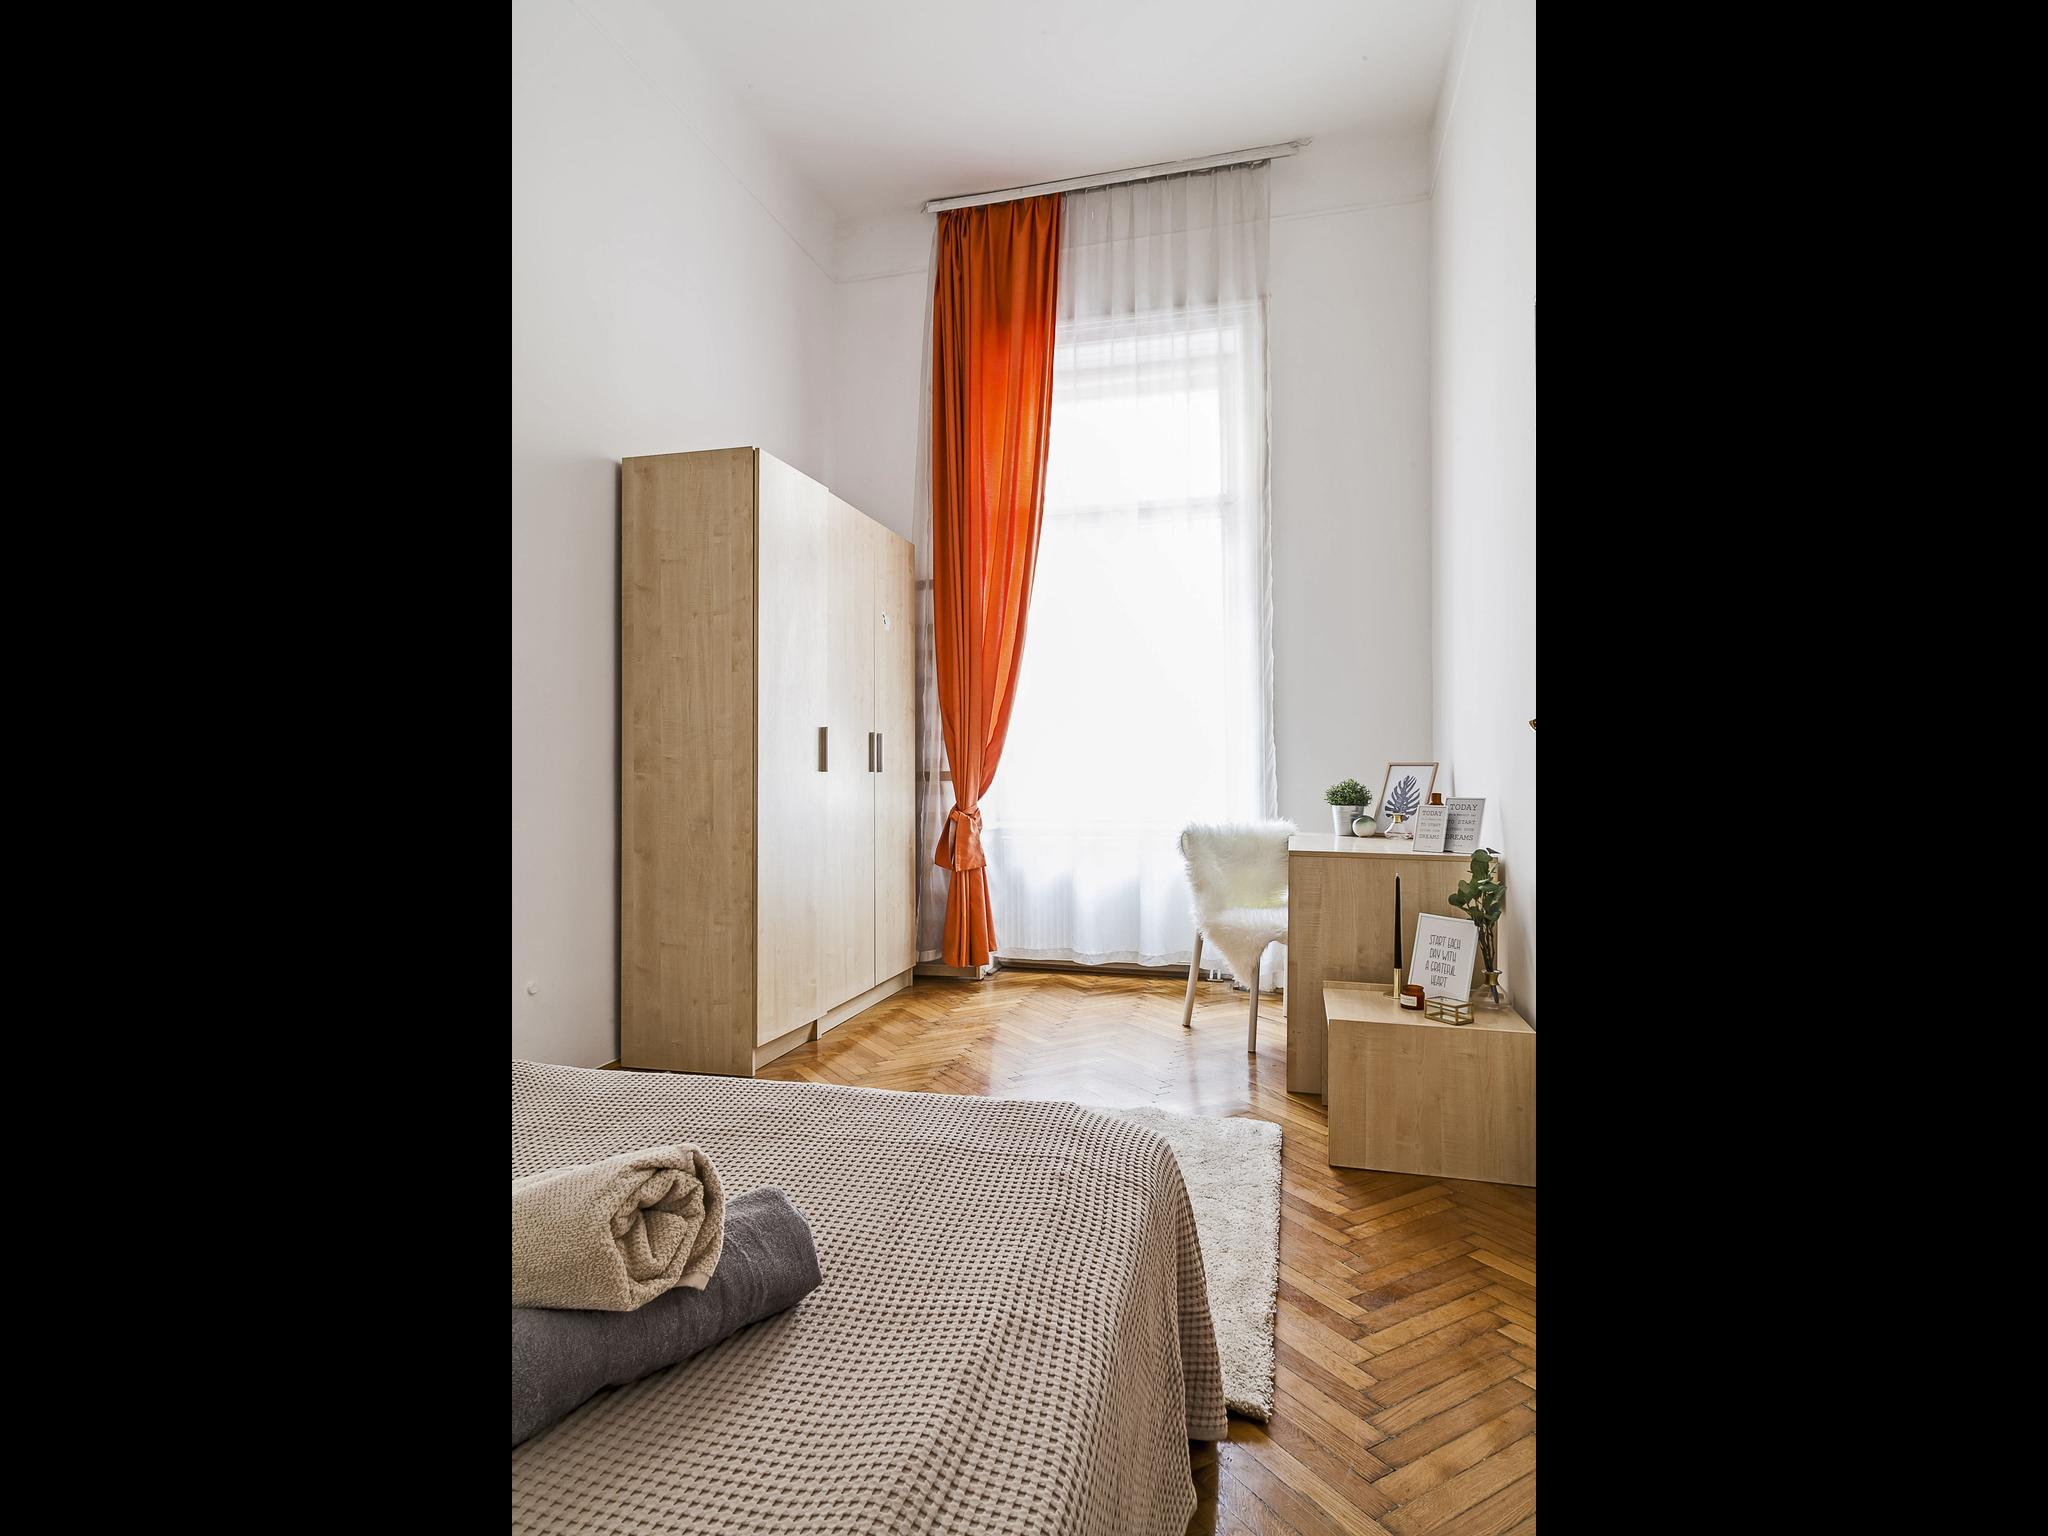 Nagymez 2 - Room for rent in Budapest